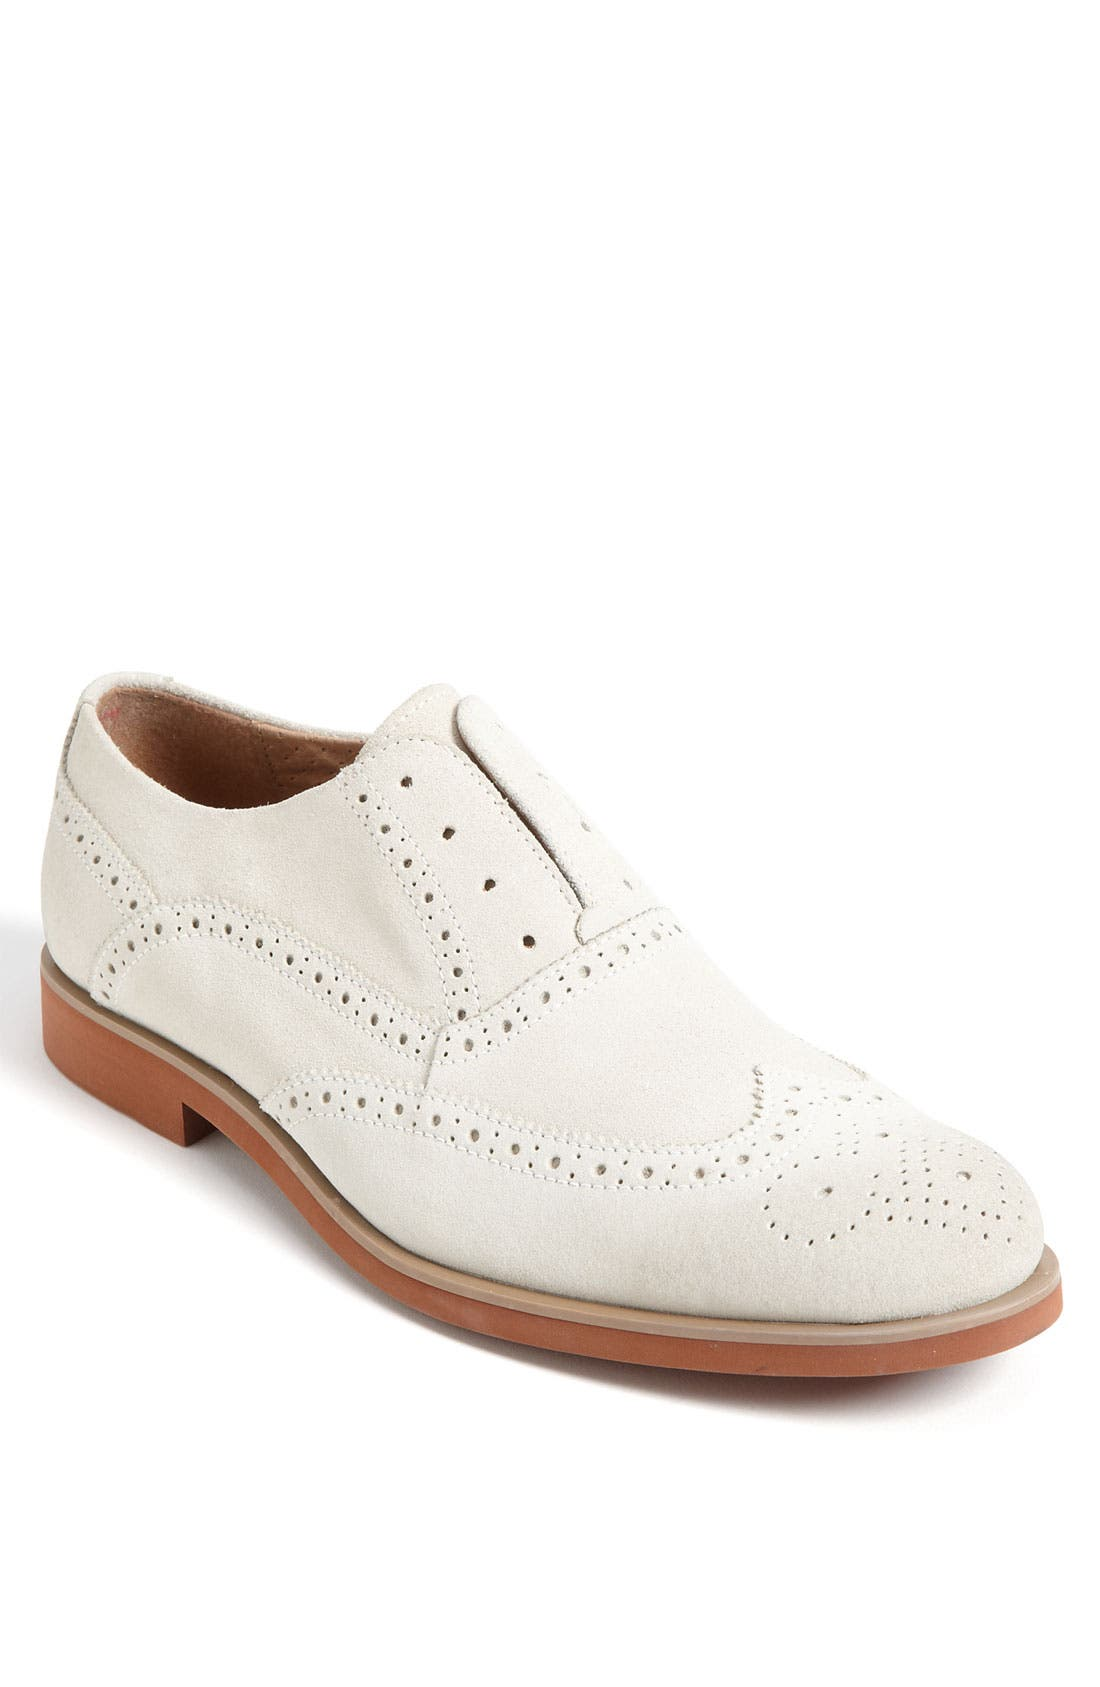 Main Image - Florsheim 'No String' Wingtip Oxford